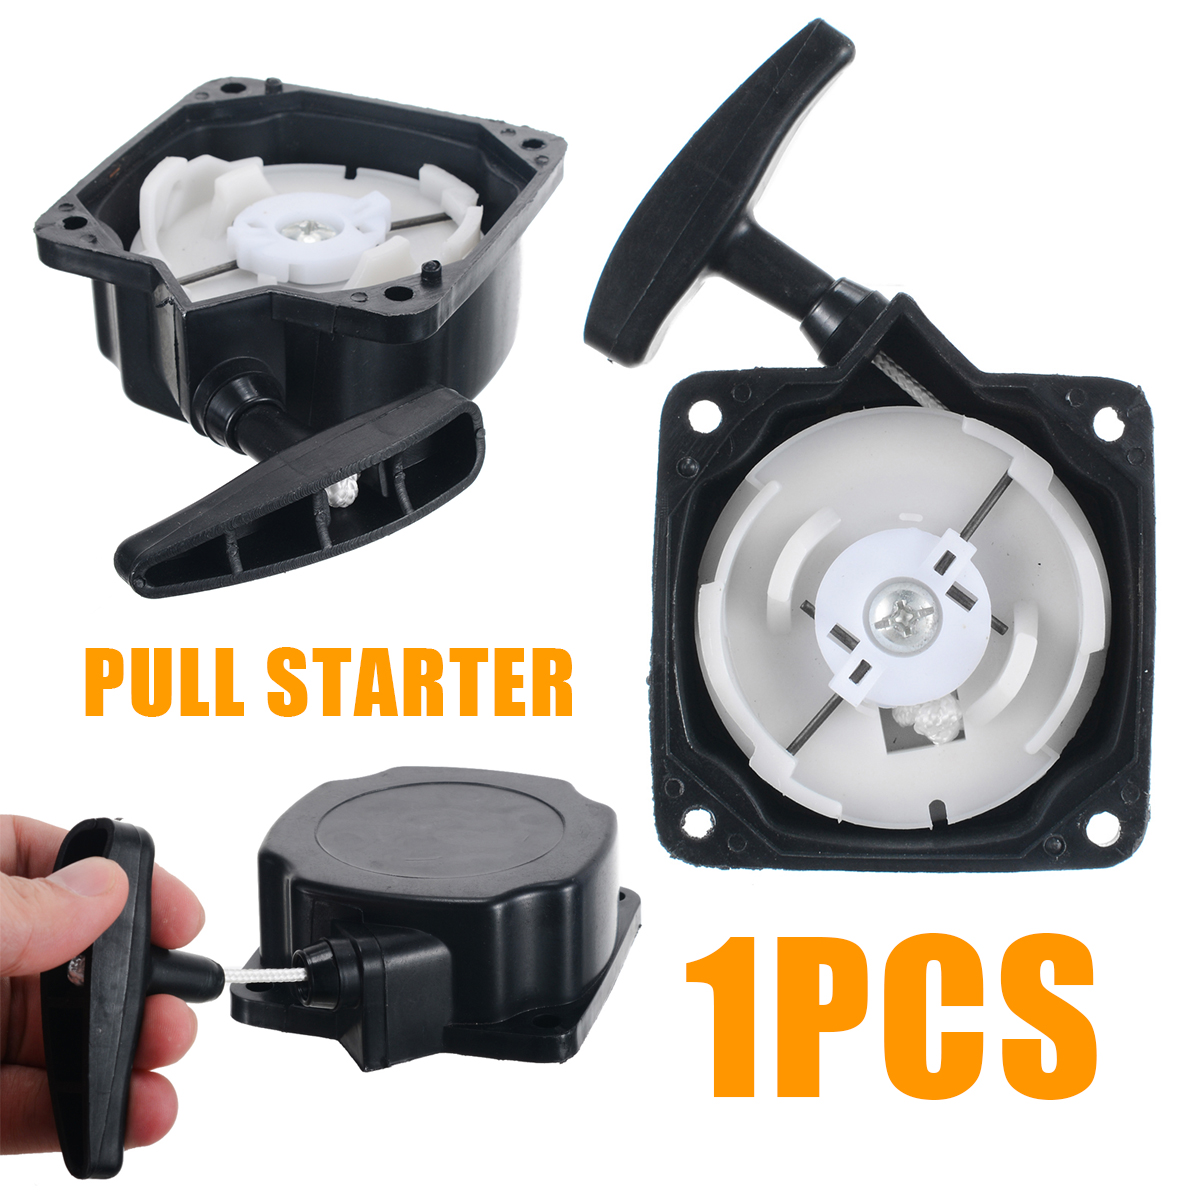 Universal Recoil Pull Starter For Brush Cutter Strimmer Lawn Mower Parts Garden Tools